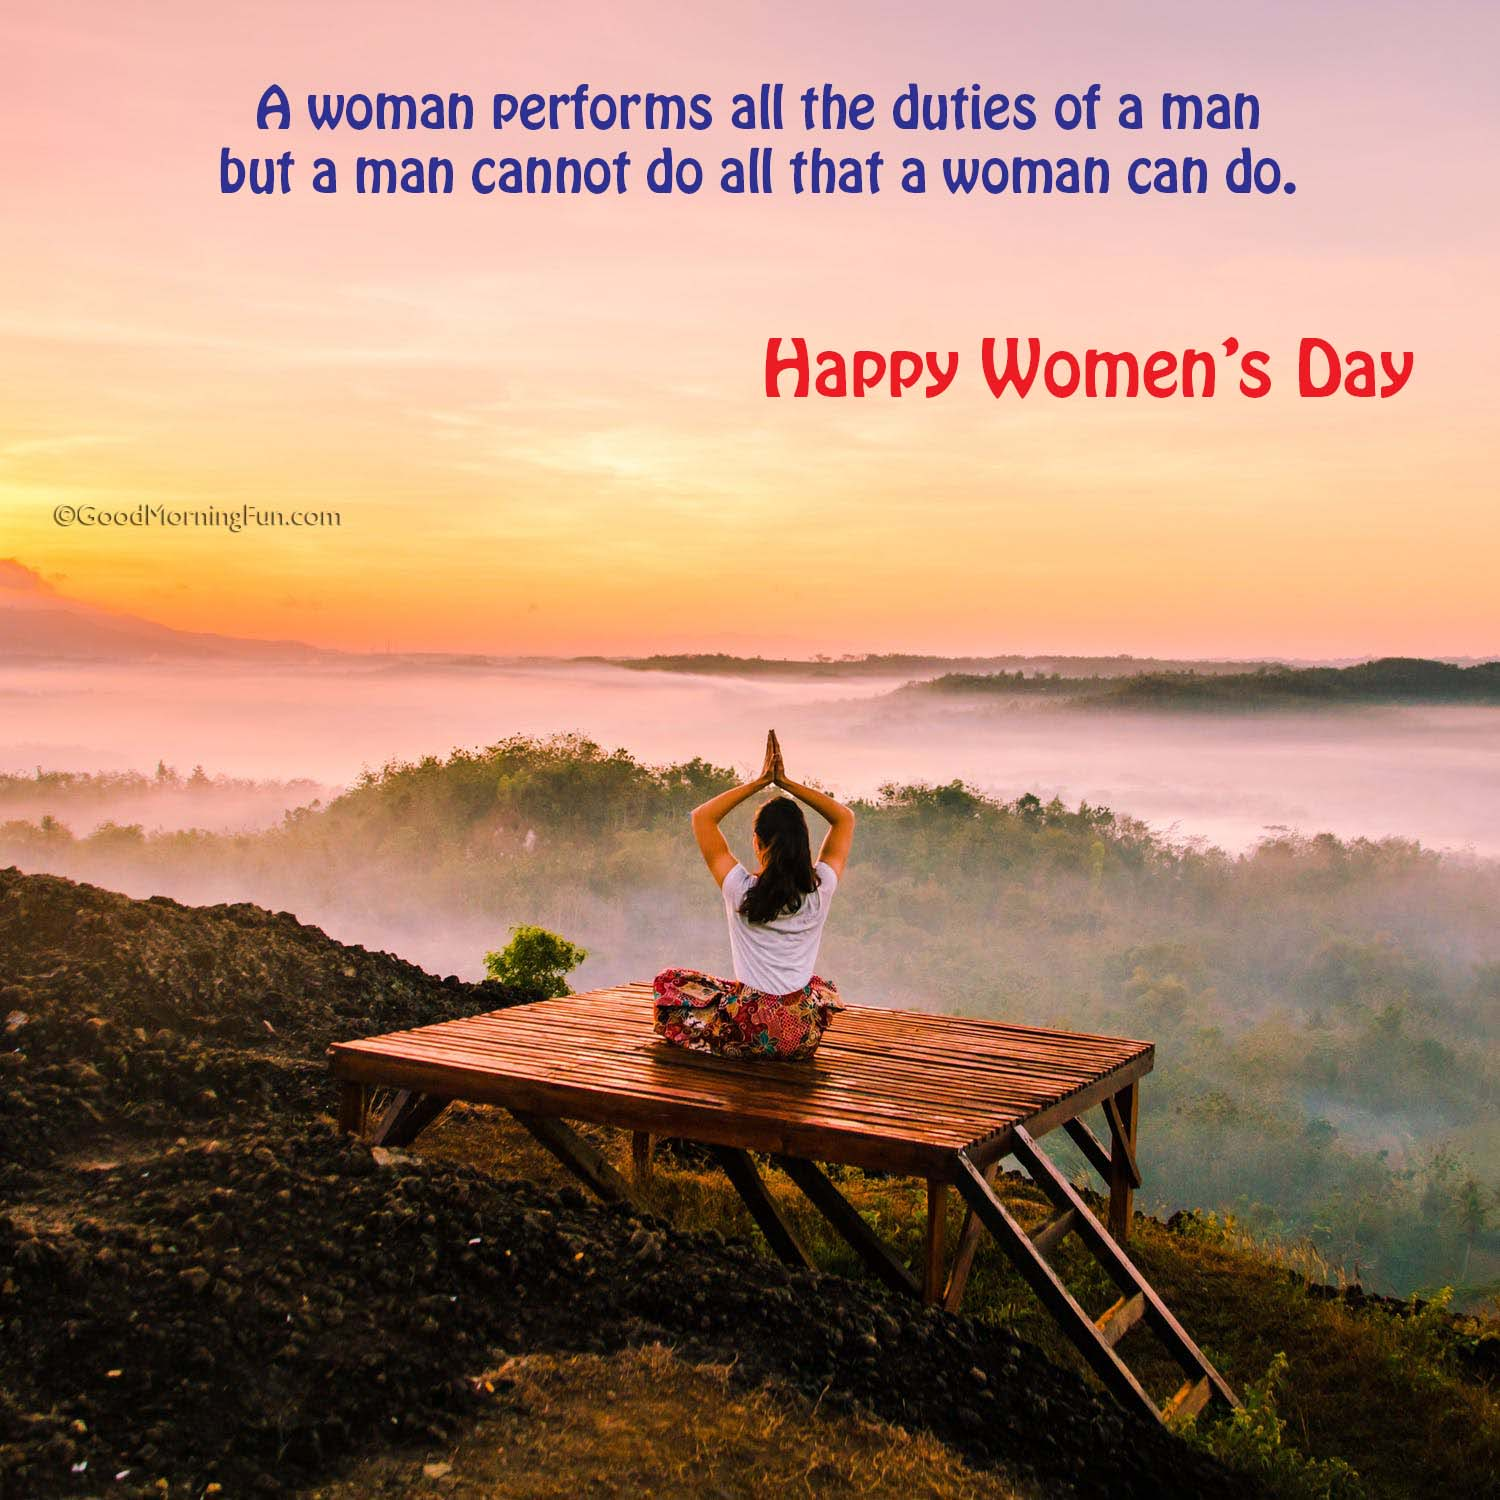 Funny International Women's Day Quotes   Good Morning Fun